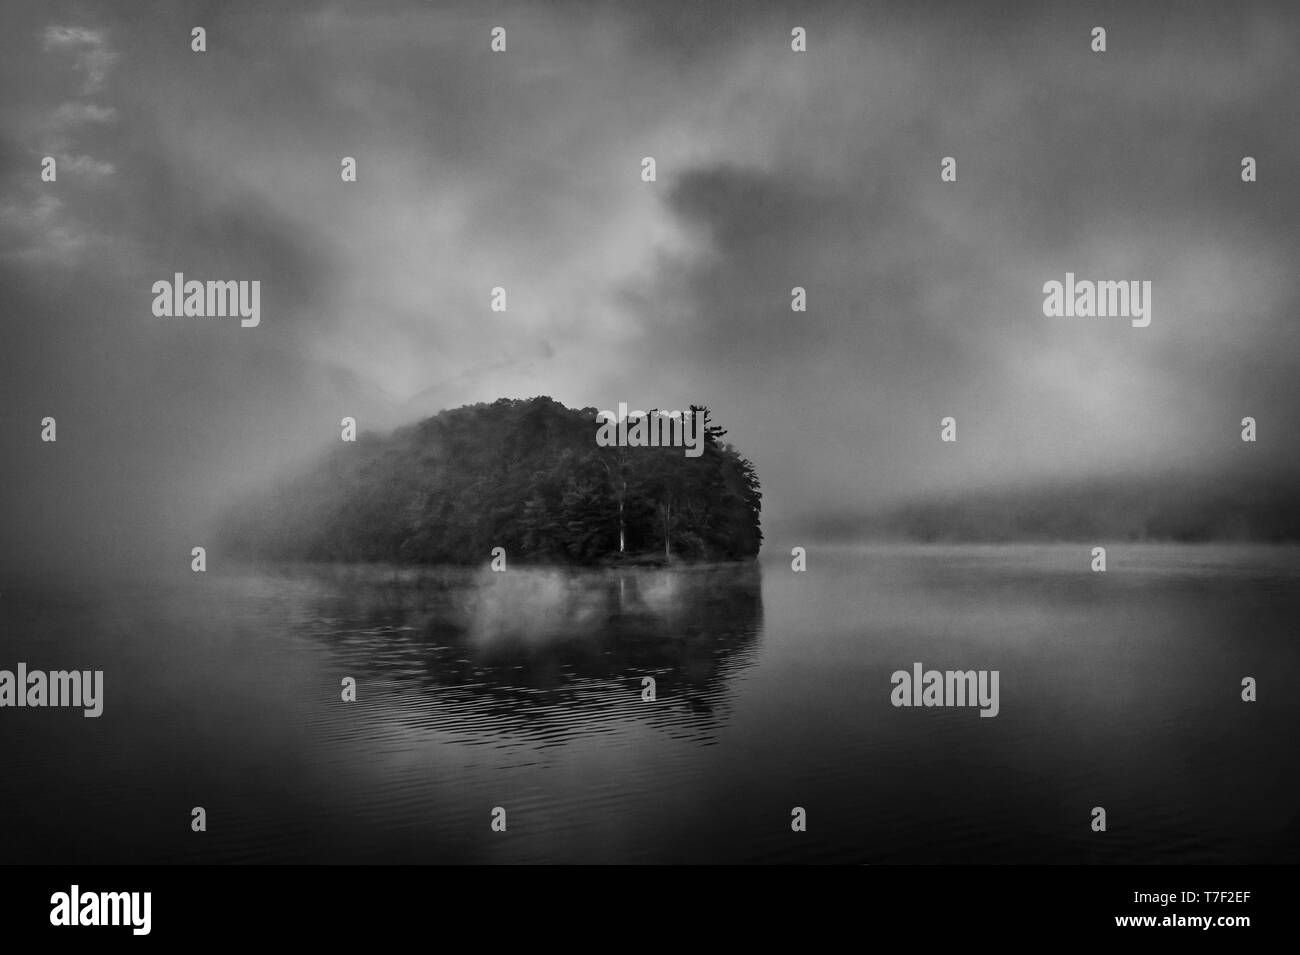 Misty Foggy Mountain Lake - Stock Image